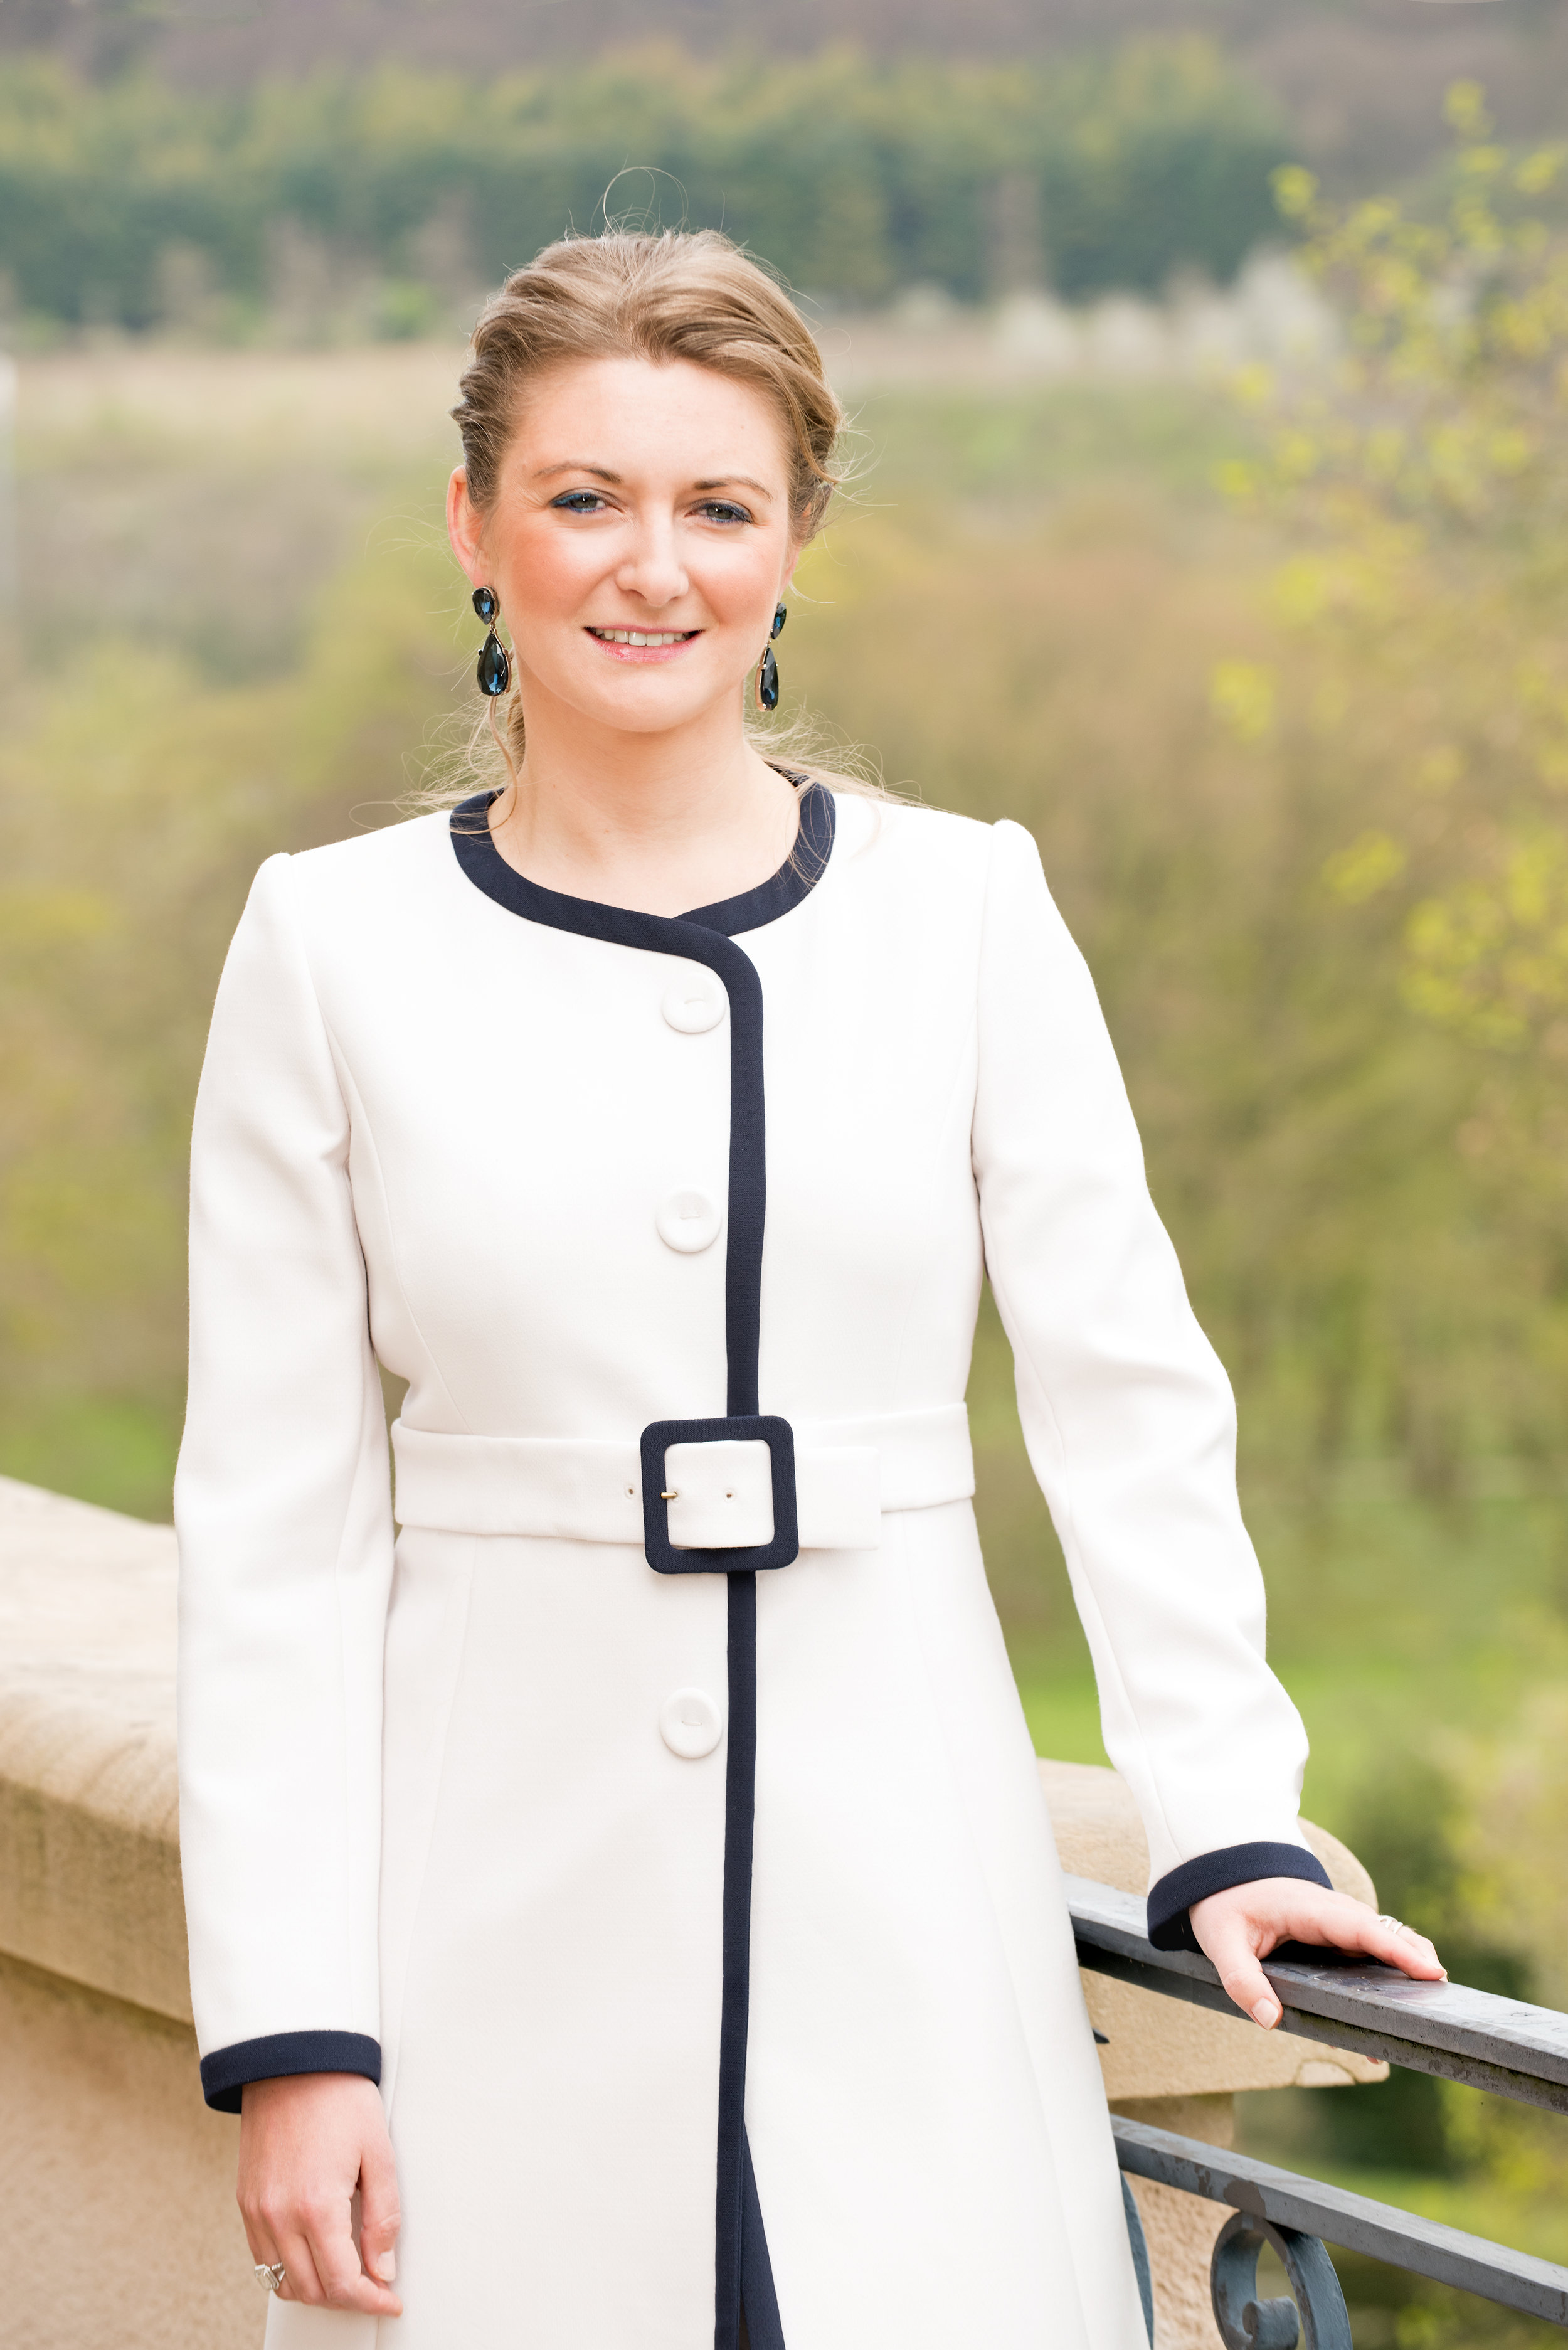 Hereditary Grand Duchess Stephanie - Countess Stéphanie de Lannoy was born on February 18, 1984, in East Flanders, Belgium, to a noble family. She has seven older siblings. Her parents are Count Philippe and the late Countess Alix who died just a few months before Stéphanie's wedding.She has a degree in German philology from Louvain-la-Neuve and also has a master's degree. The polygot speaks several languages (English, French, Dutch, German, Luxembourgish and Russian).She married Hereditary Grand Duke Guillaume of Luxembourg on October 19 and 20, 2012. She's now the Hereditary Grand Duchess.© 2017 Cour grand-ducale / Lola Velasco / tous droits réservés